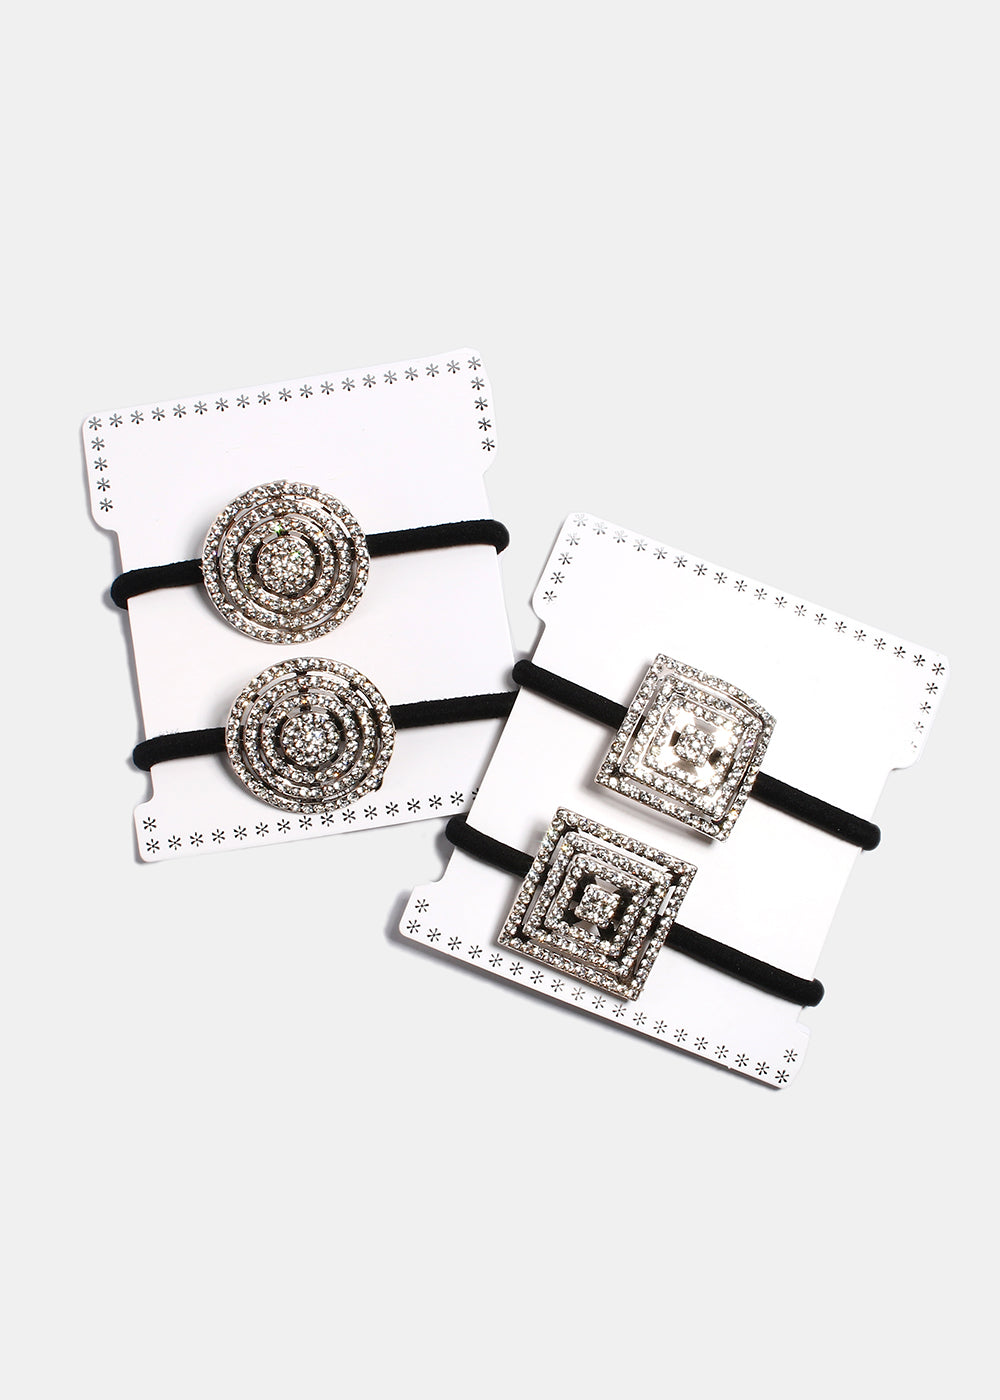 2 Piece Rhinestone Square & Circle Hair Ties